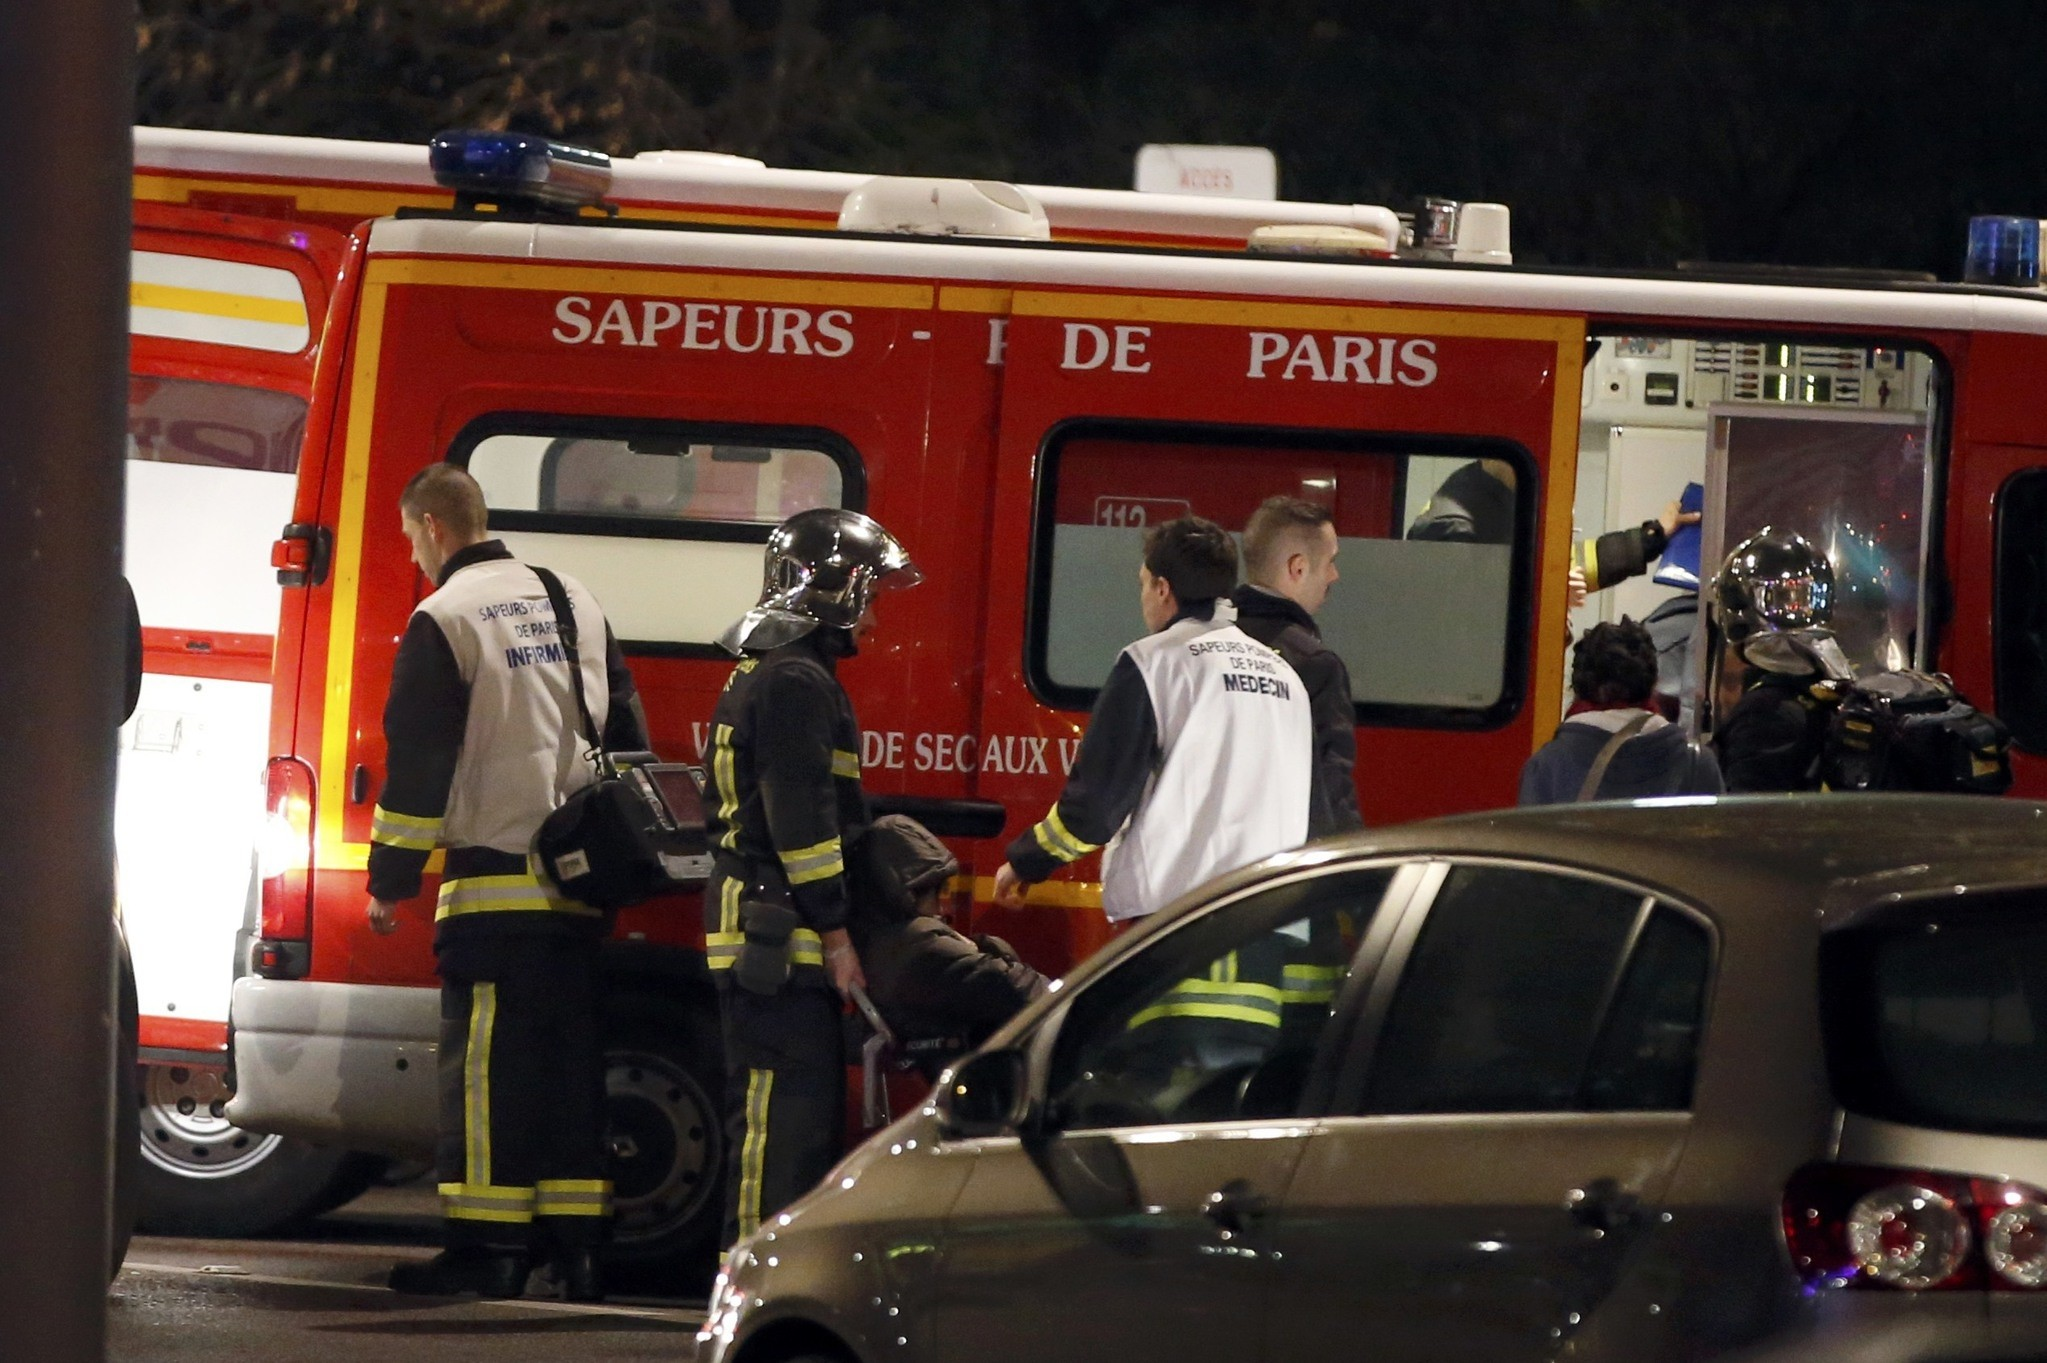 French firemen and doctors tend to a person who was one of six people in a travel agency when an armed man entered in what appears to be a robbery. (REUTERS Photo)